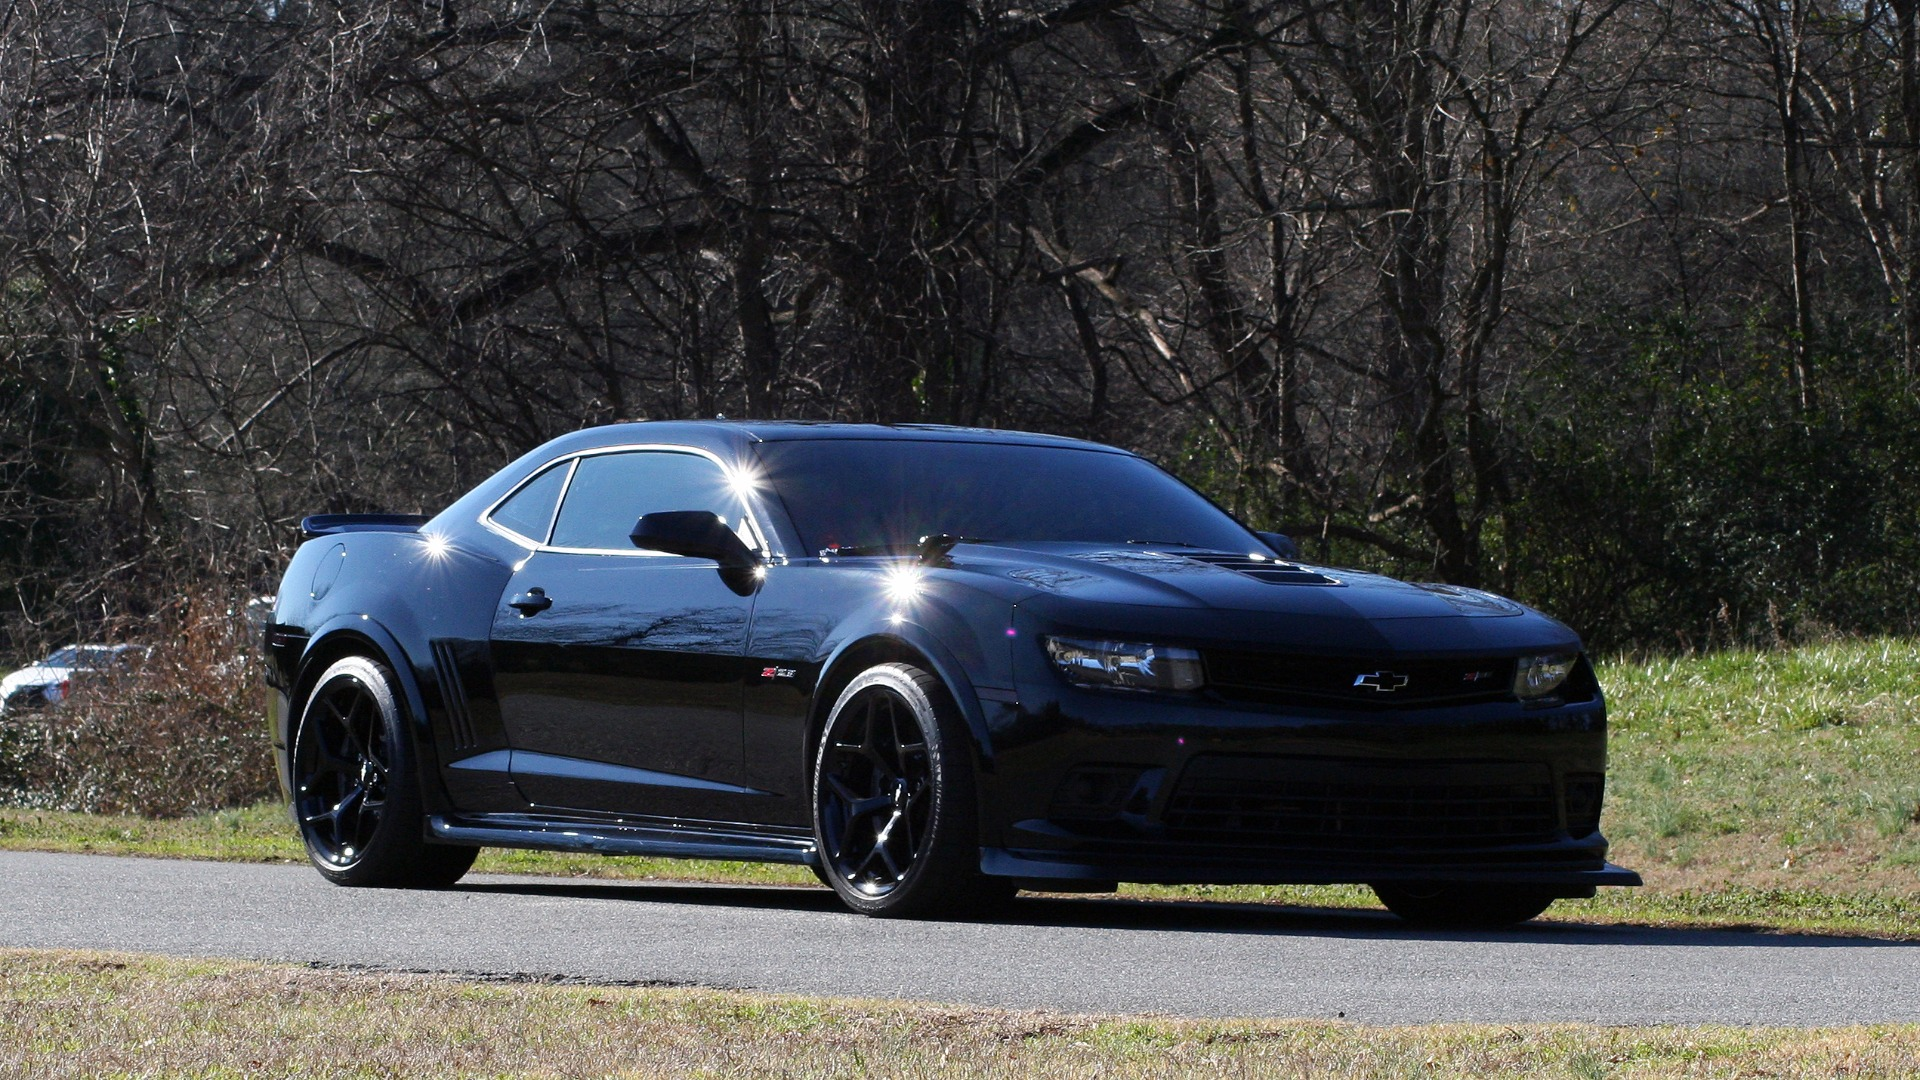 Used 2014 Chevrolet CAMARO Z/28 / 427 7.0L V8 505HP / RADIO / AIR CONDITIONING for sale Sold at Formula Imports in Charlotte NC 28227 15